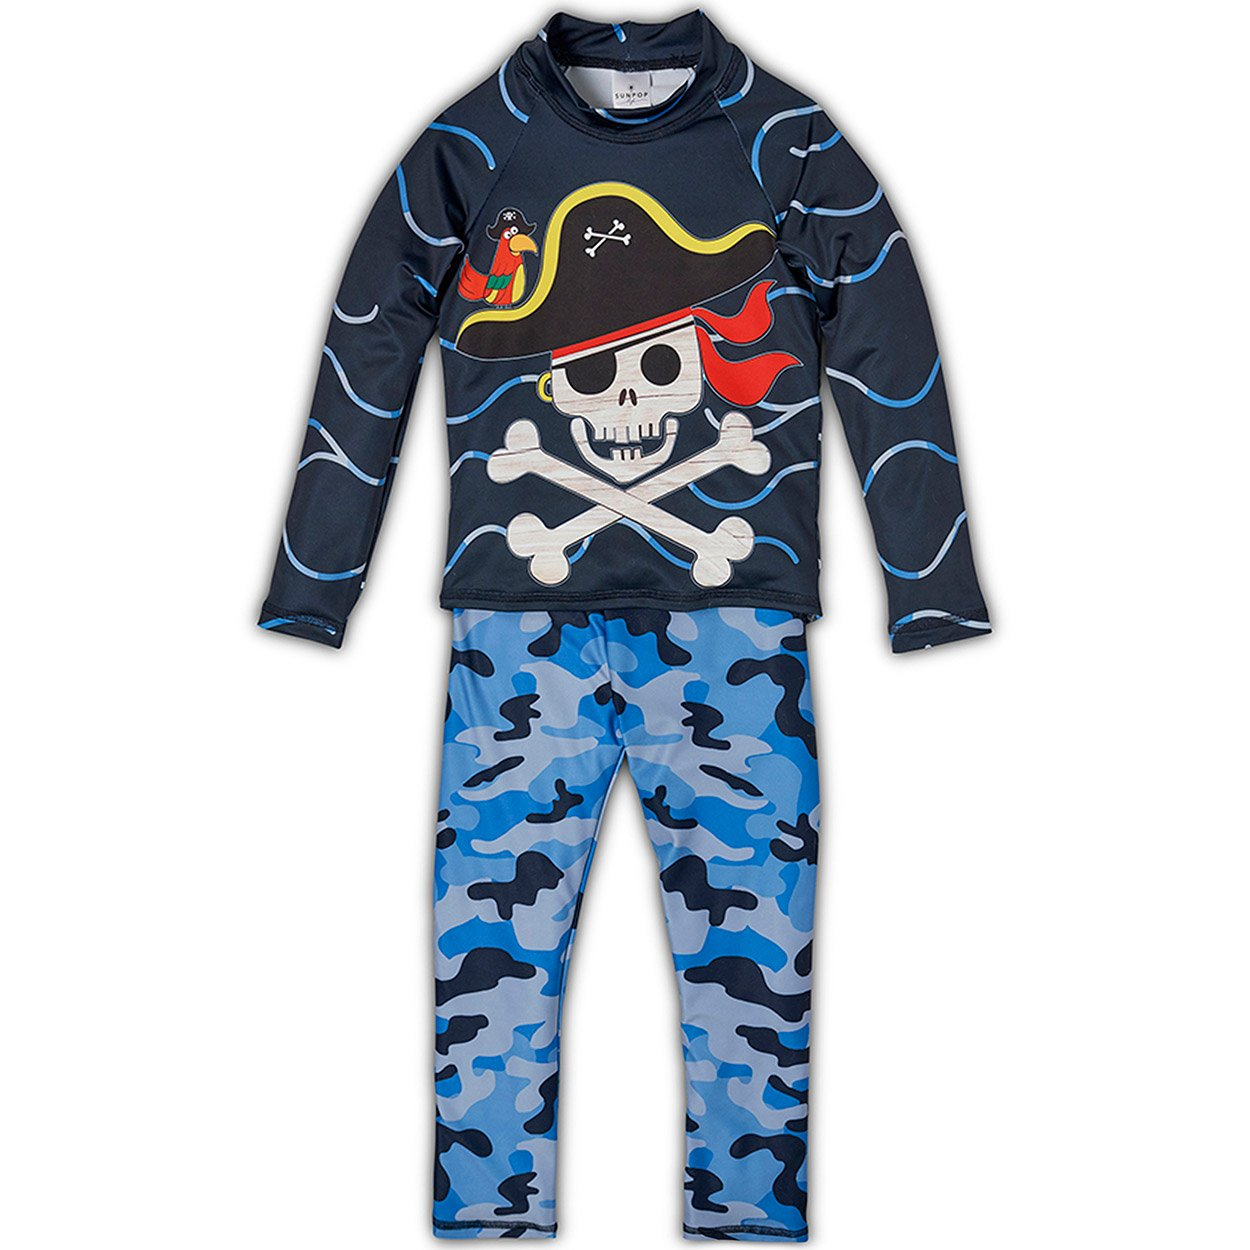 Fun Pirate 2-pc Rash Guard Set UPF 50+ for Boys